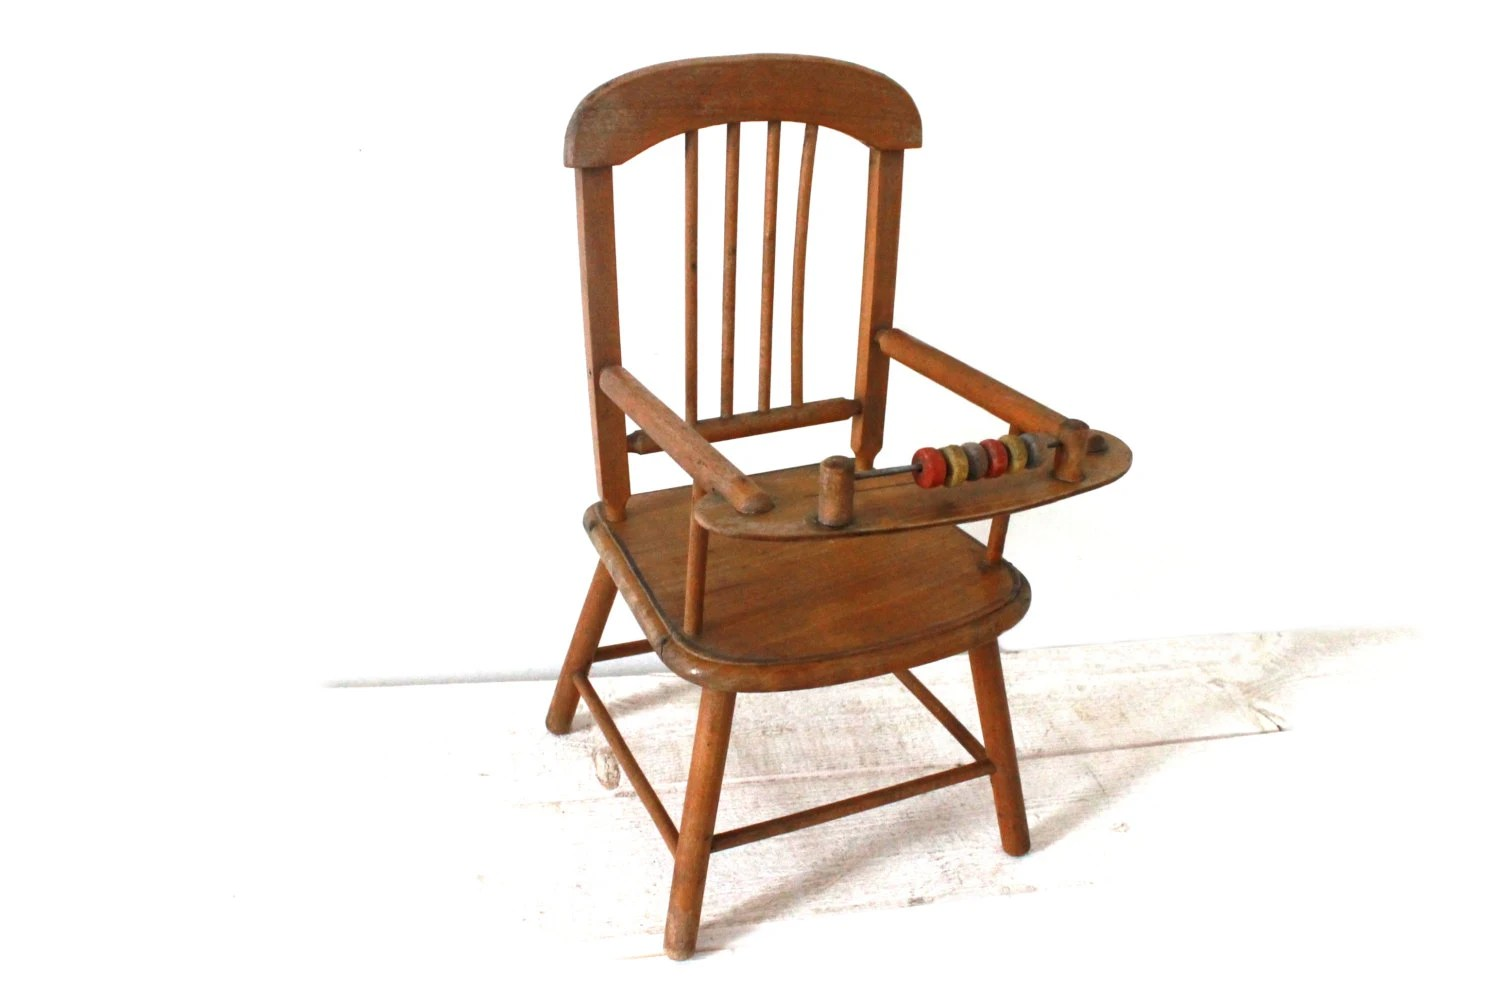 Marvelous photograph of Lovely little Wooden Baby Chair Toy for Doll with abacus. 1950  with #A73E24 color and 1500x999 pixels